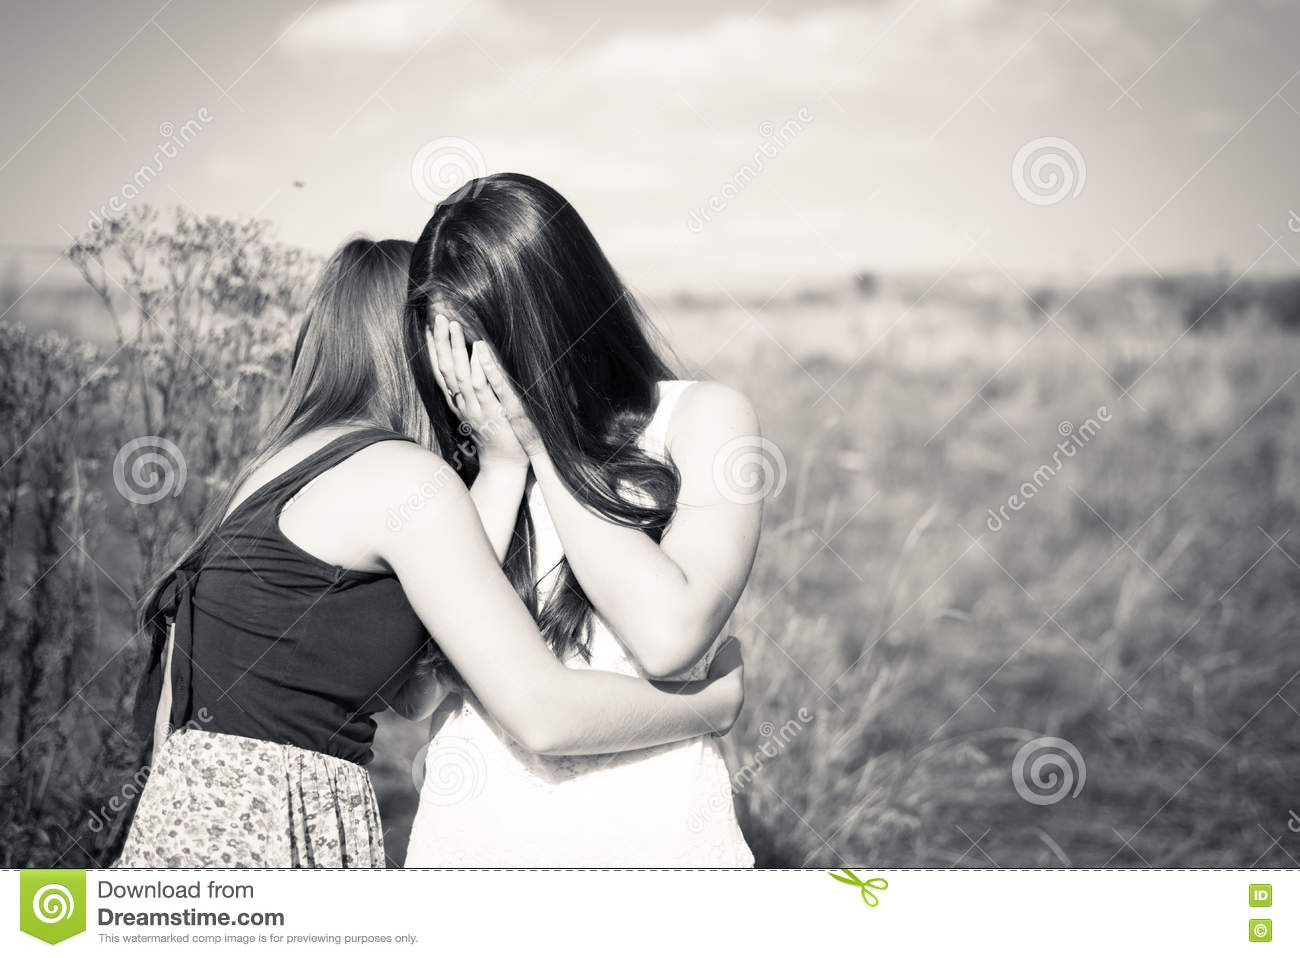 Two Teenage Girls Friends Having Difficult Times Friendship Concept Stock Image Image Of Black Adult 69357717